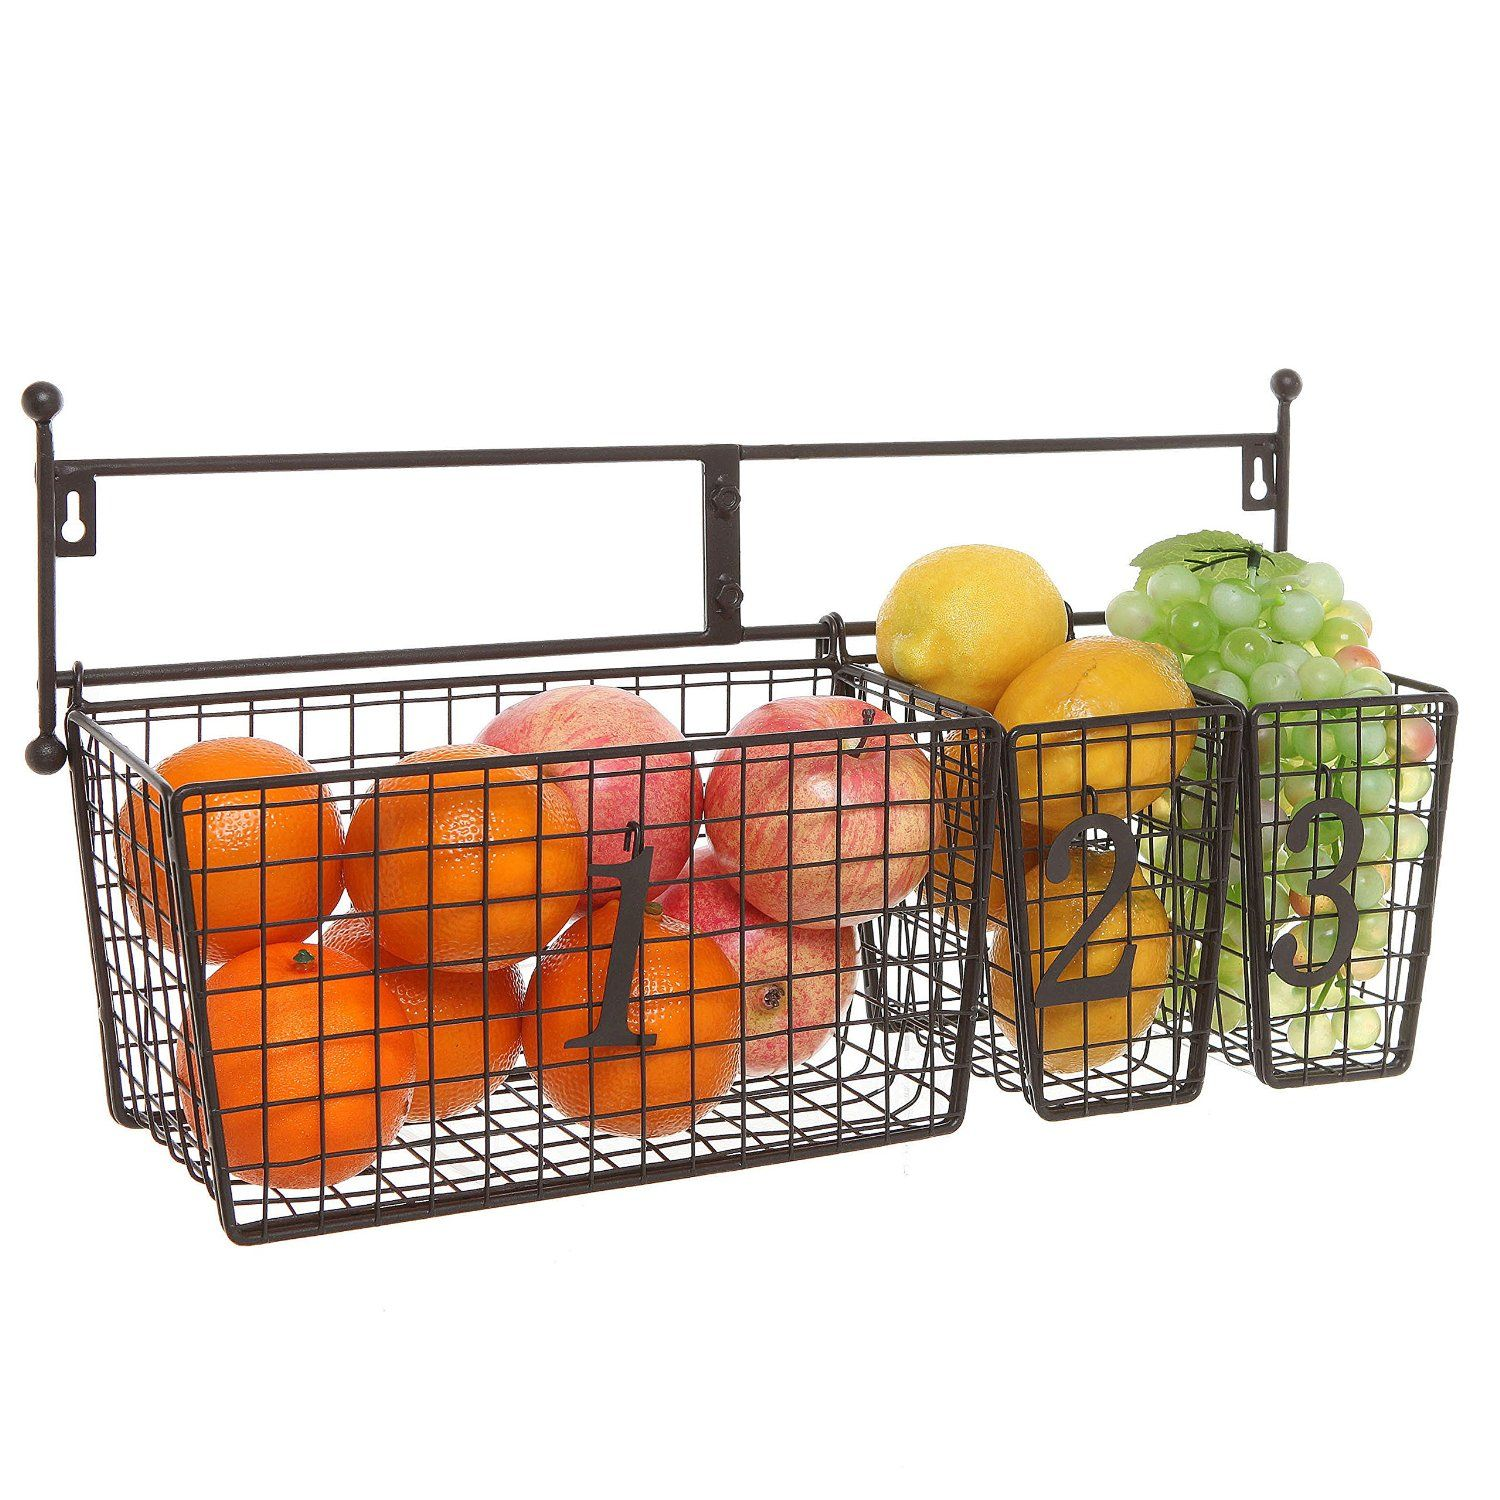 kitchen basket storage aid refrigerator parts amazon wall mounted black metal wire mesh numbered